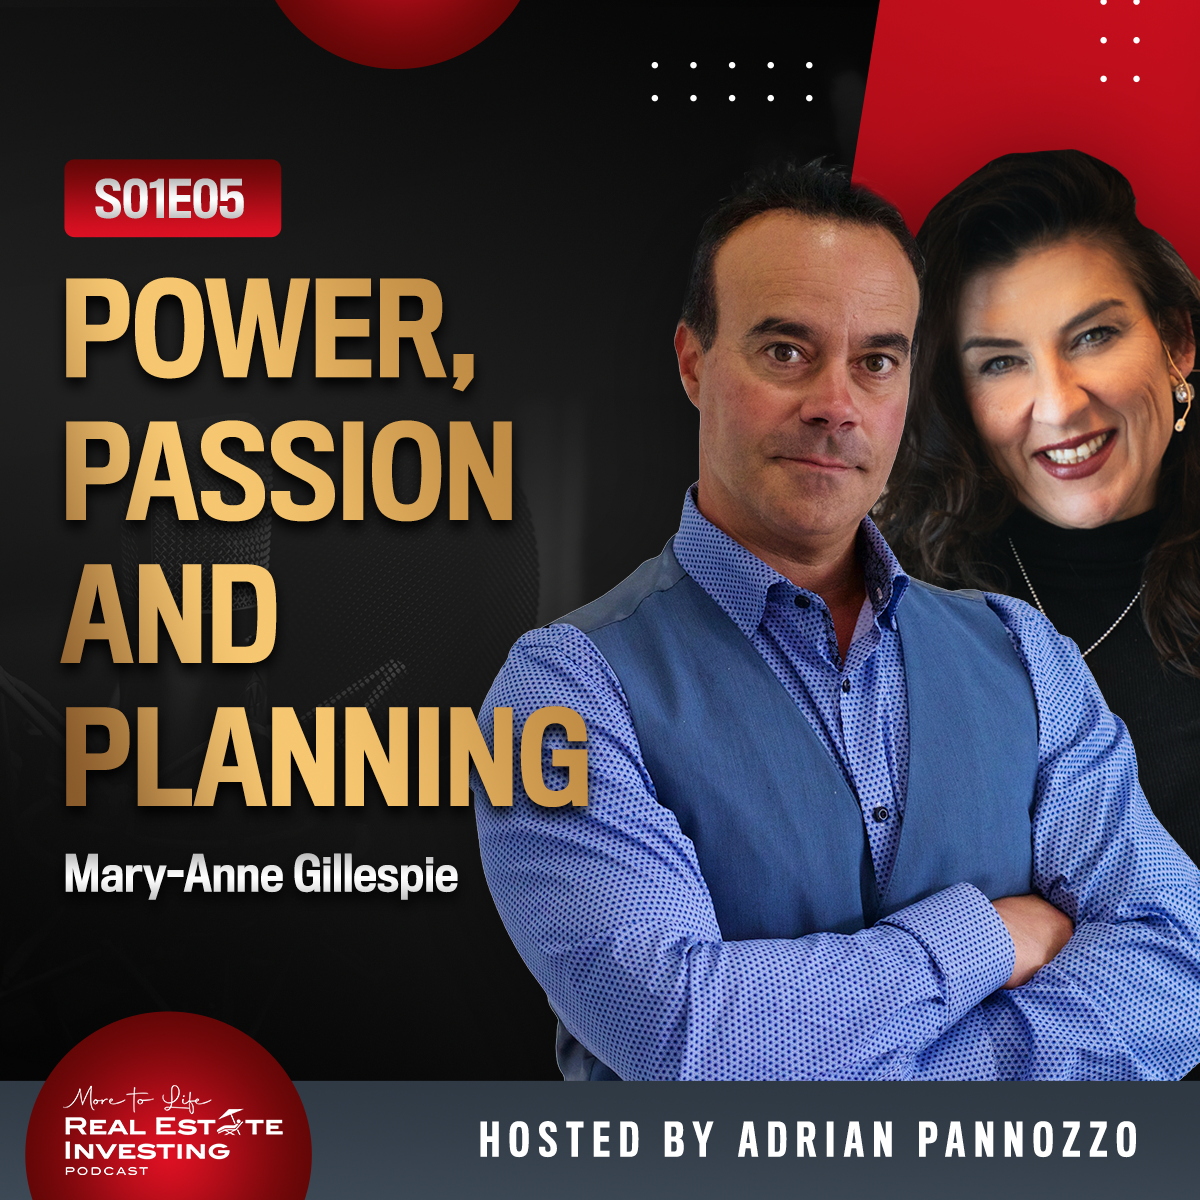 Power, Passion And Planning with Mary-Anne Gillespie | S01E05